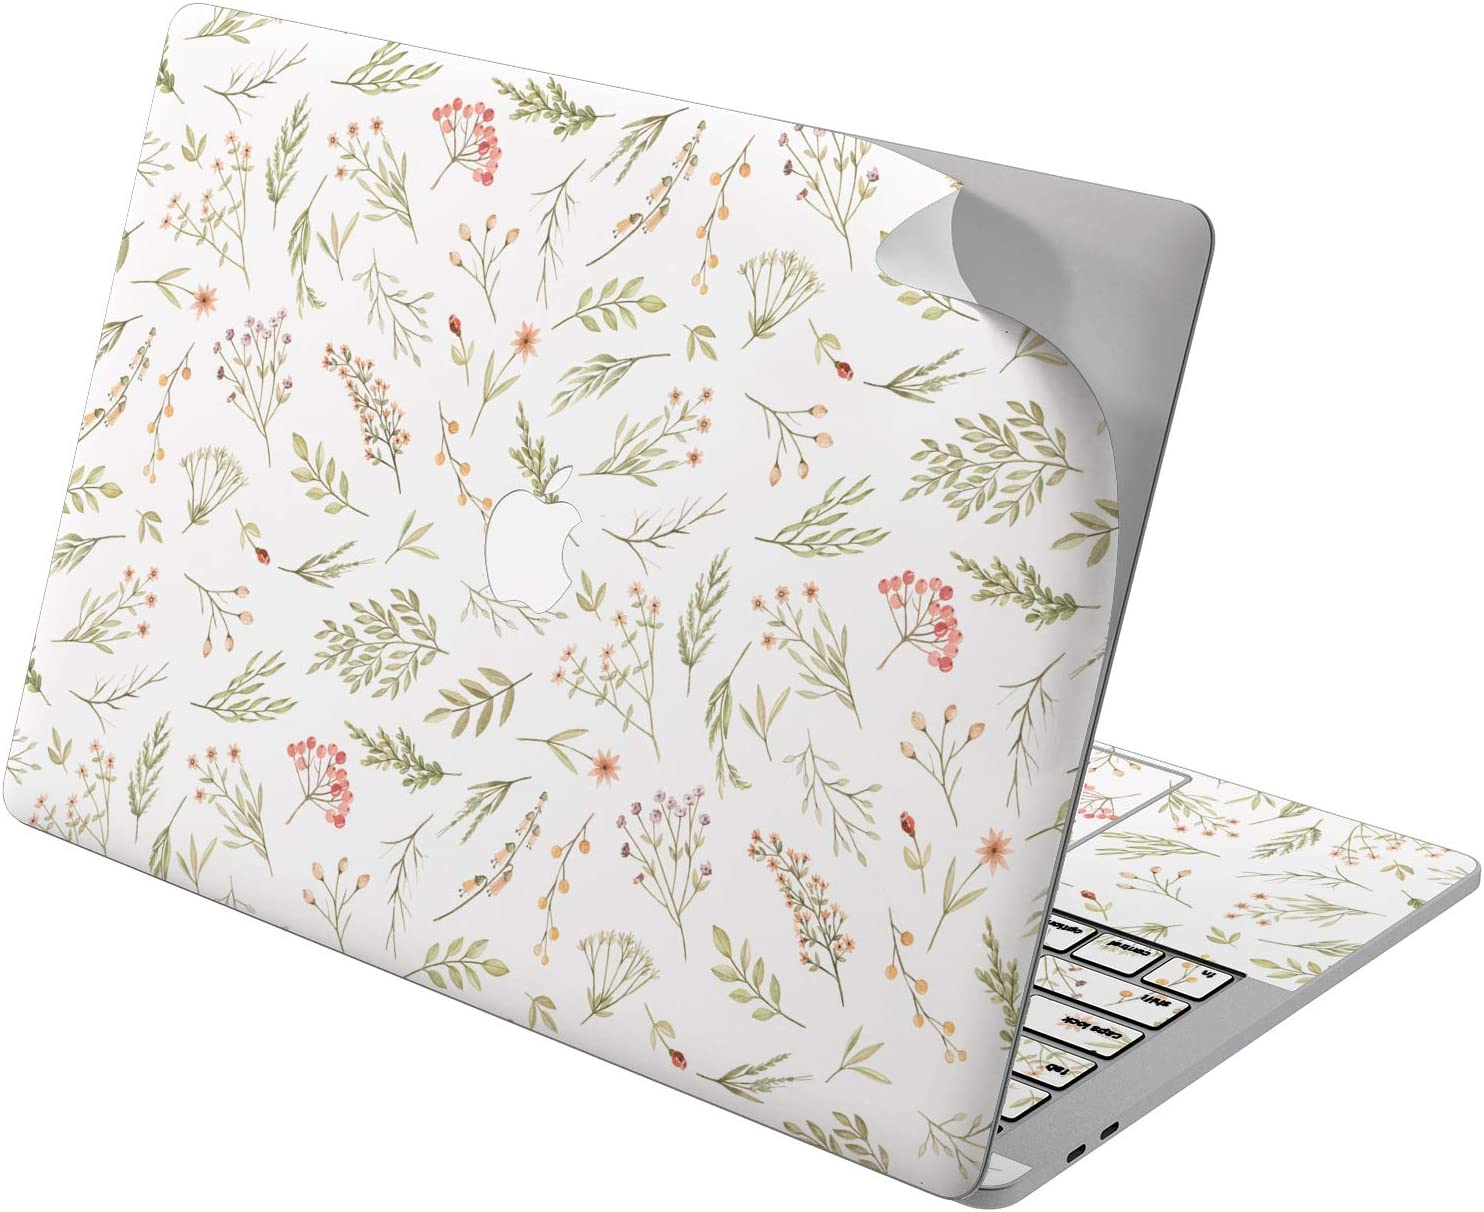 "Cavka Vinyl Decal Skin for Apple MacBook Pro 13"" 2019 15"" 2018 Air 13"" 2020 Retina 2015 Mac 11"" Mac 12"" Wildflowers Cover Sticker Design Pattern Print Girl Perennial Cute Laptop Green Protective Herb"